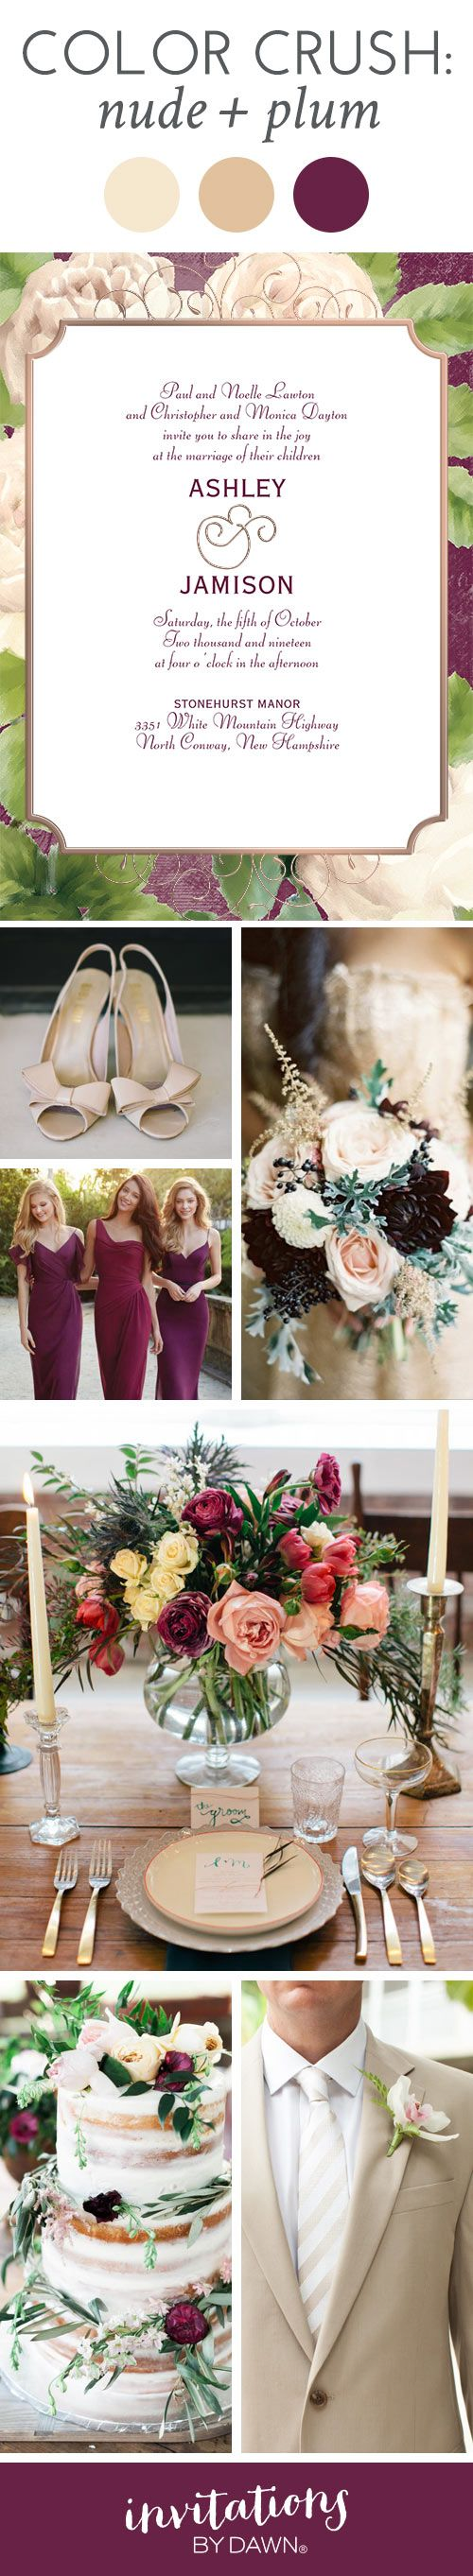 Wedding Color Crush: Nude and Plum. A beautiful color palette for practically any season.